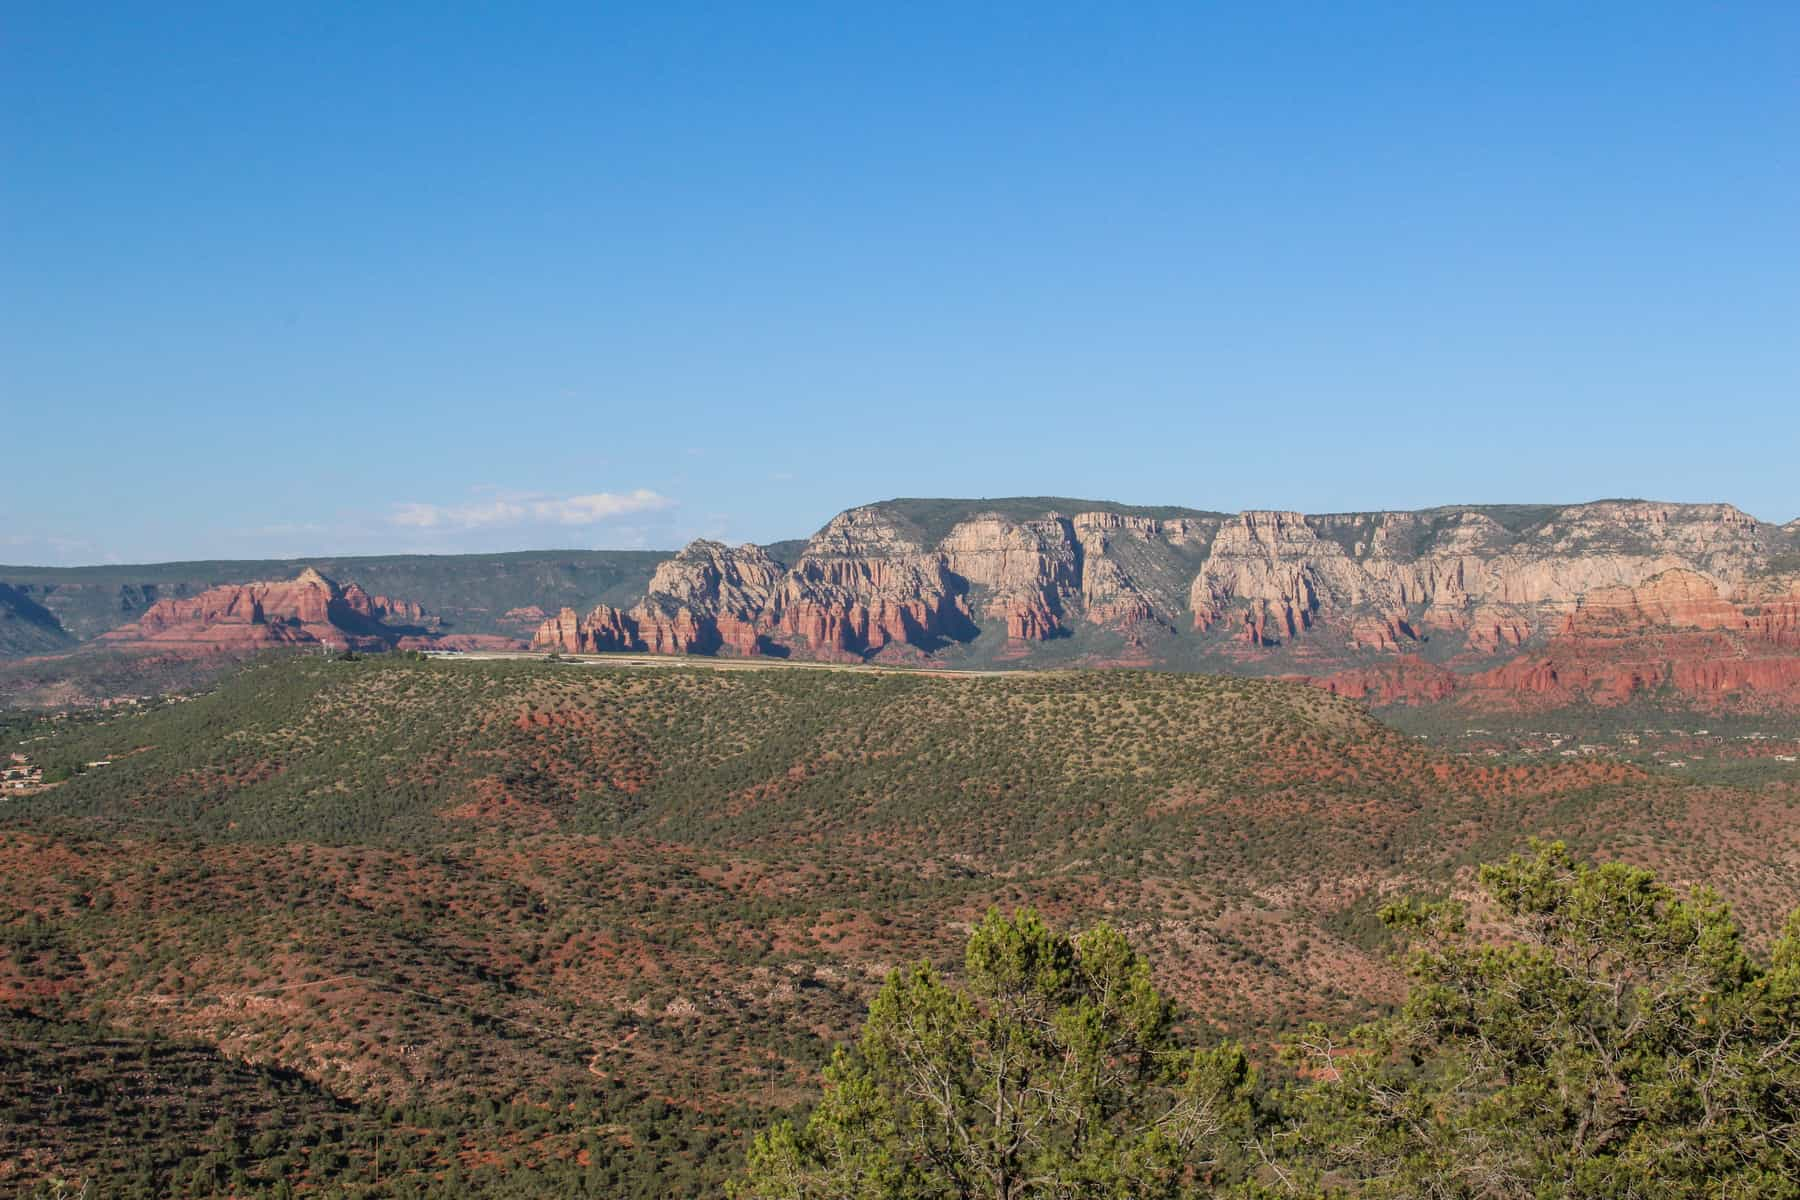 Schuerman Mountain Trail Sedona off the Beaten Path